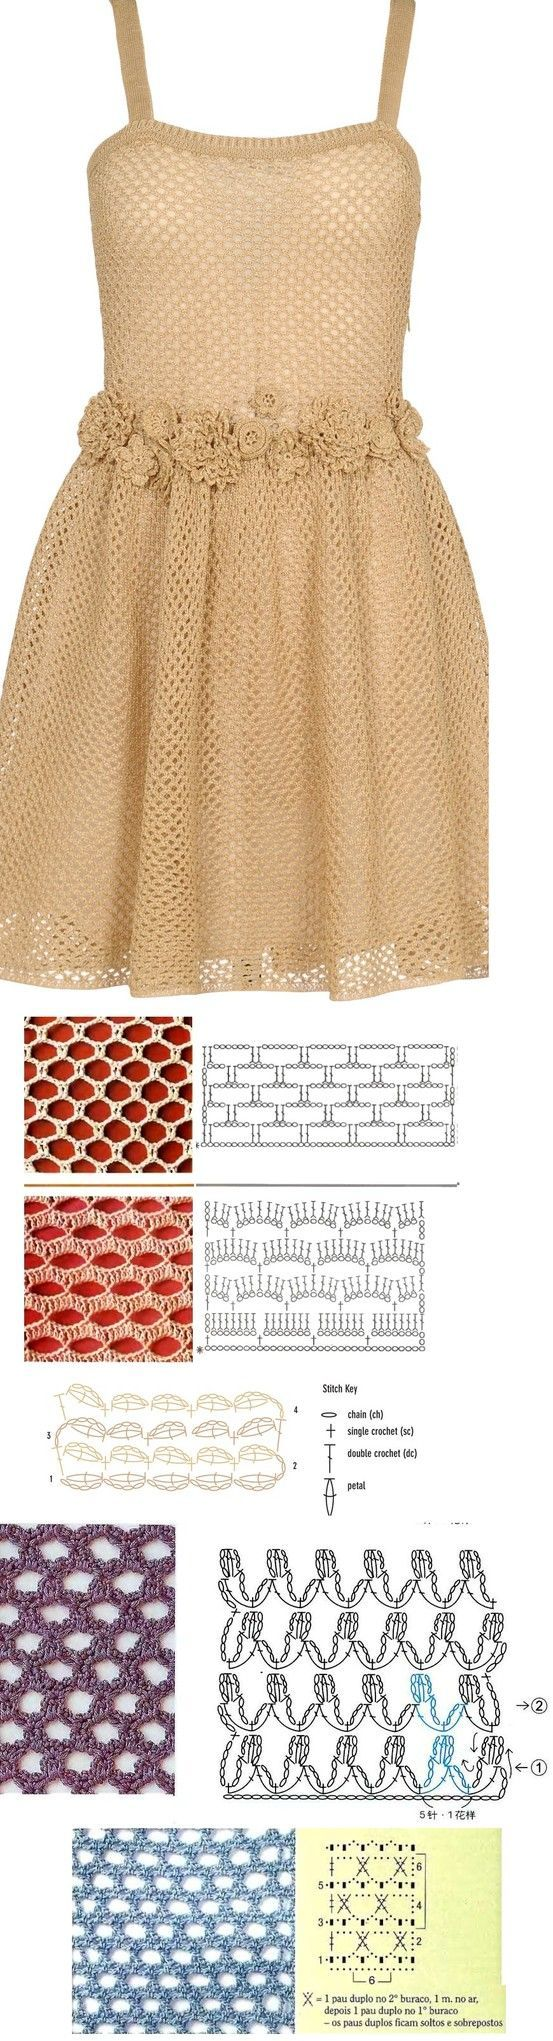 Valentino crochet dress - here are some possible mesh stitches to make it... <3: